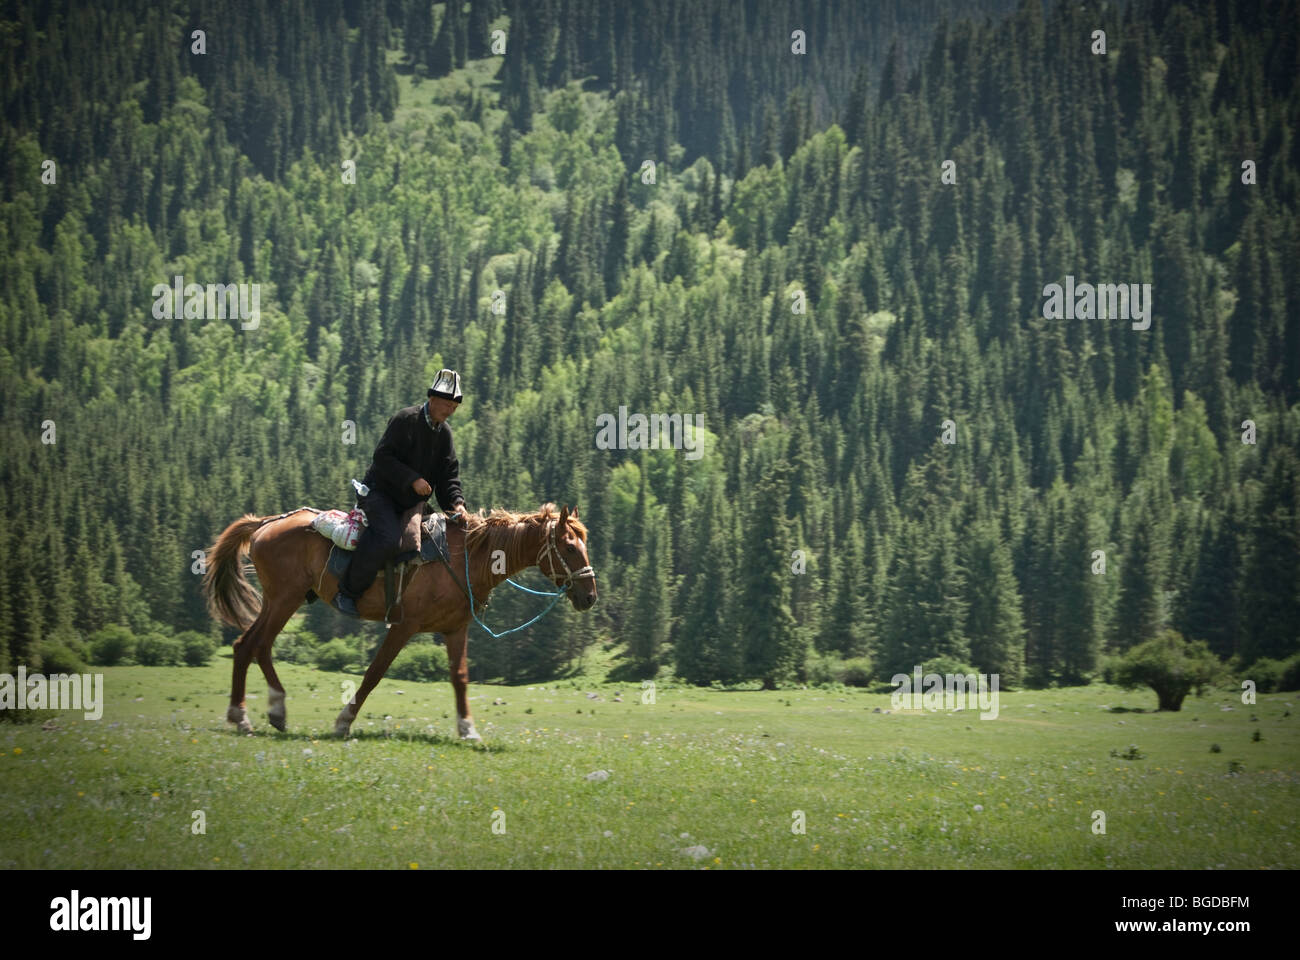 Kyrgyz horse rider in the mountains of Karakol, Kyrgyzstan. Stock Photo